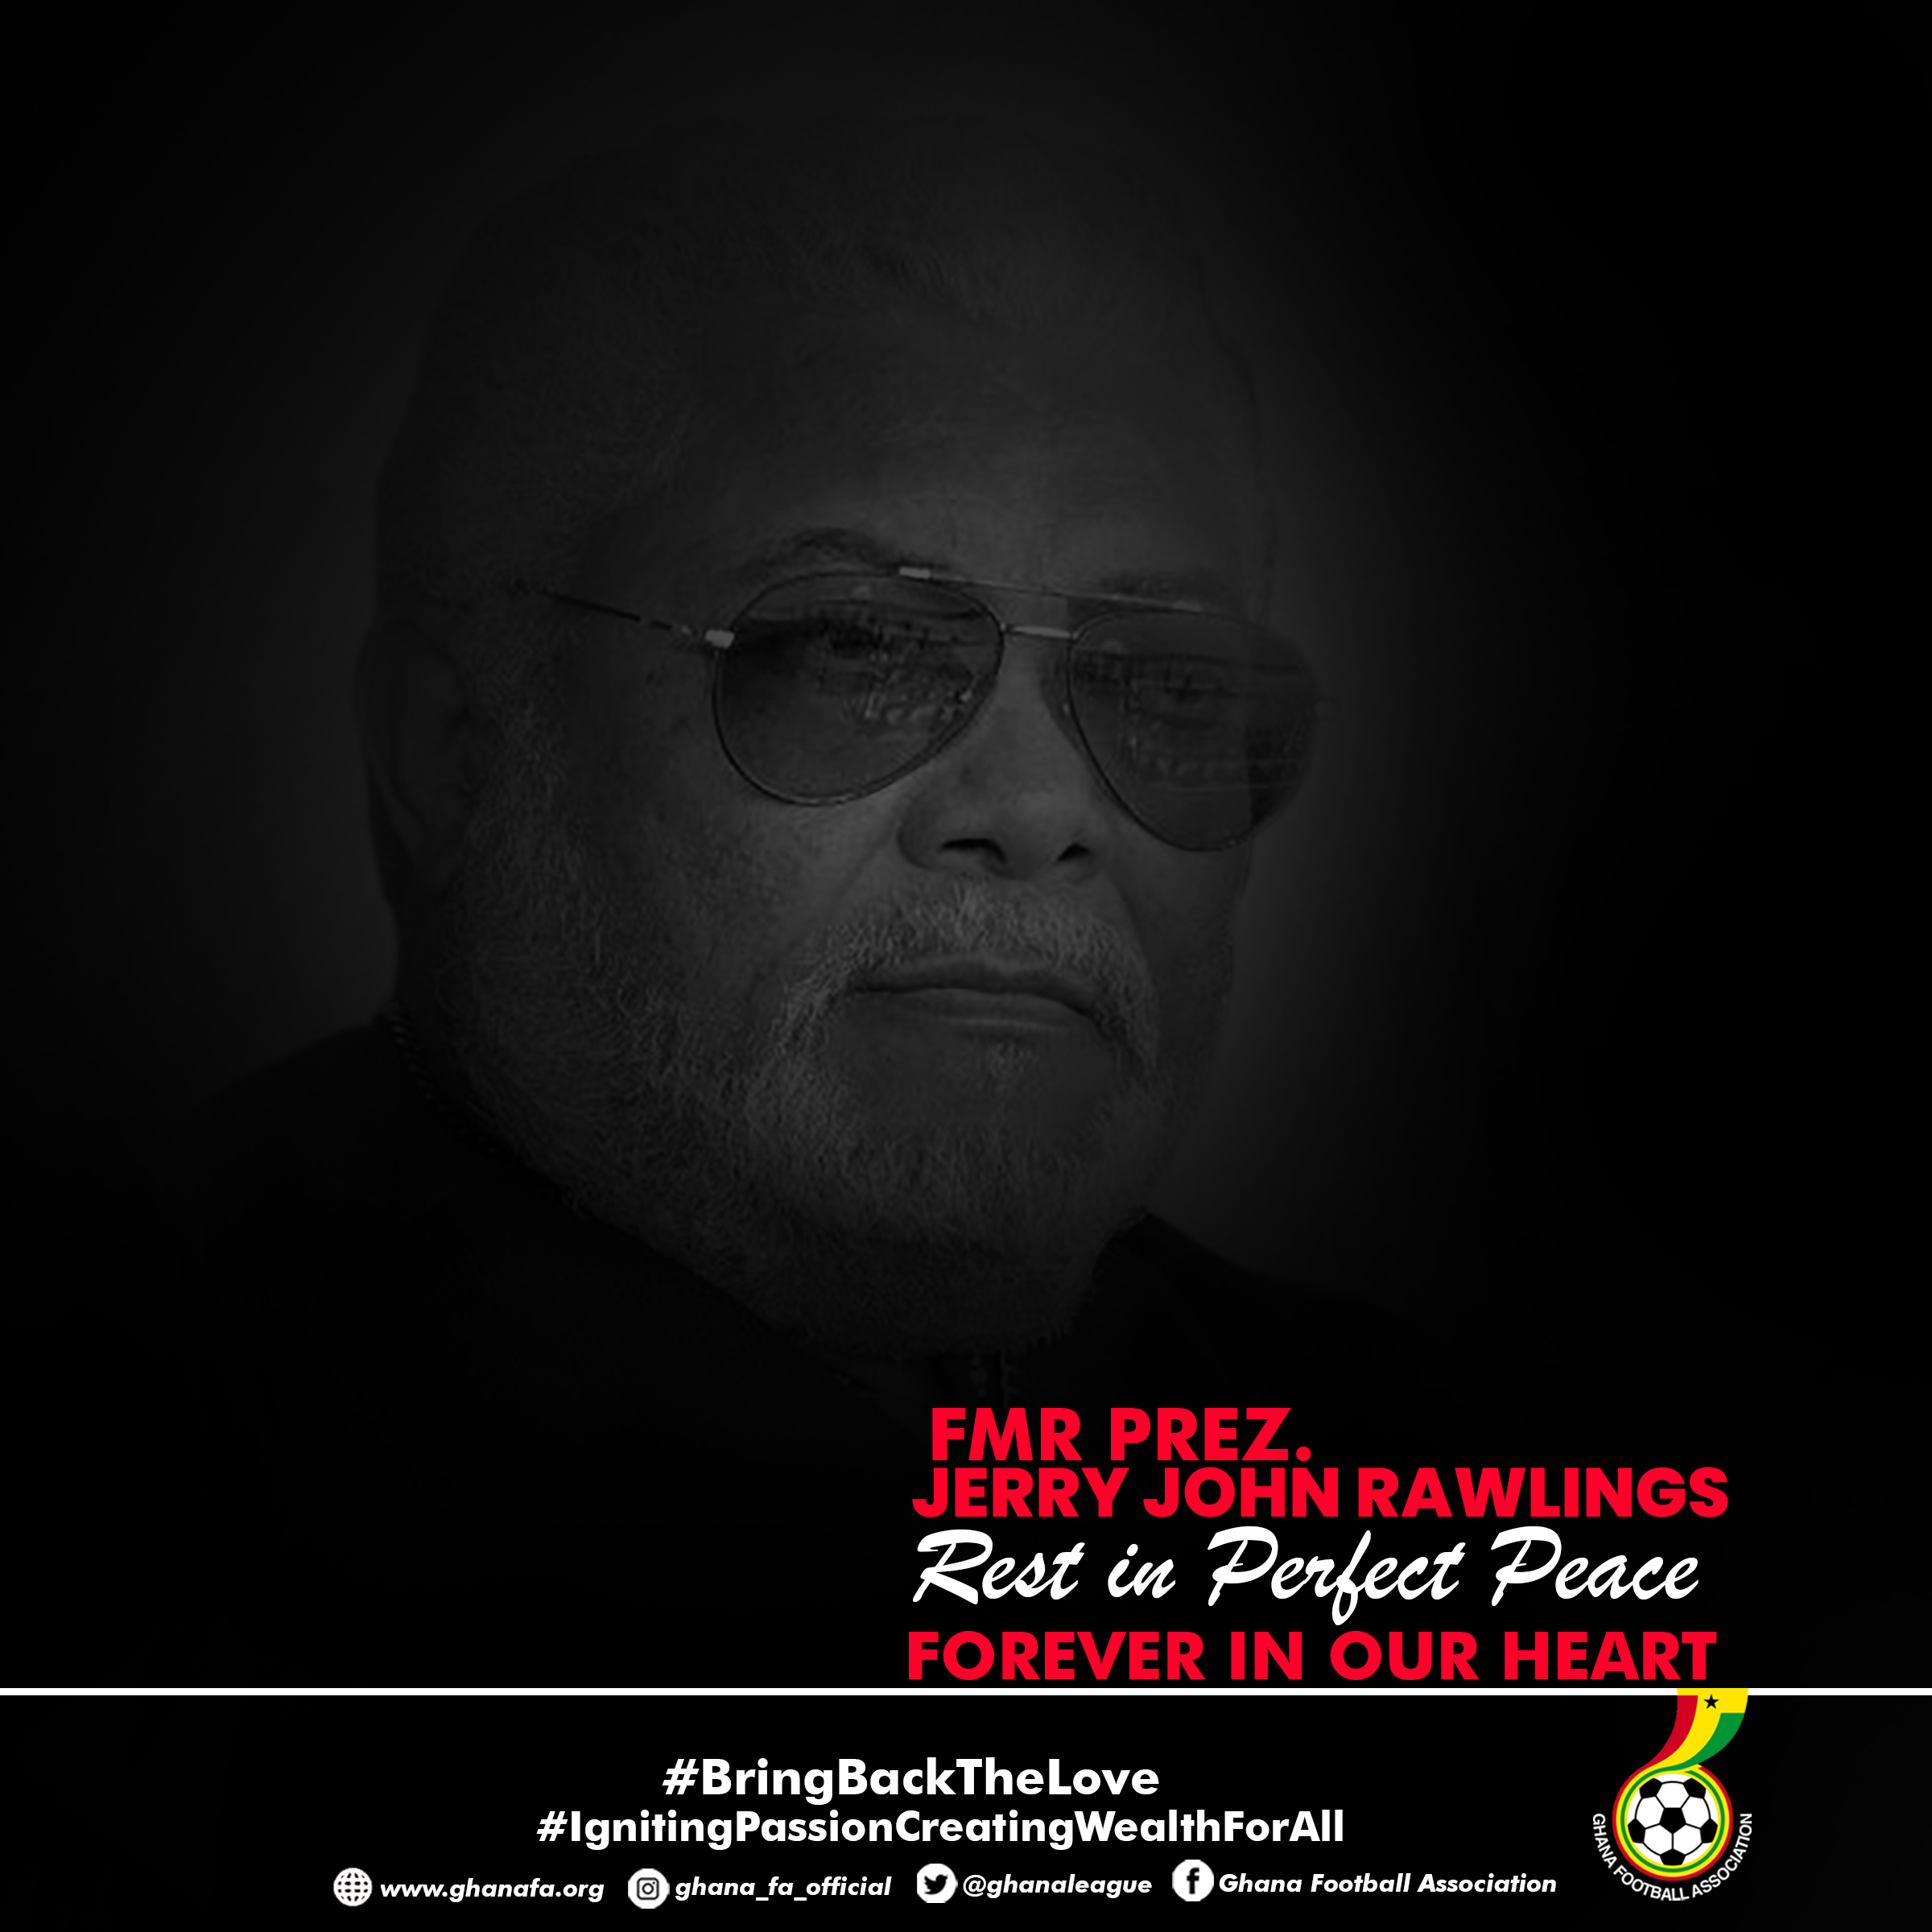 Mourning Jerry John Rawlings - Day 2: CAF President sends condolences to President Nana Addo